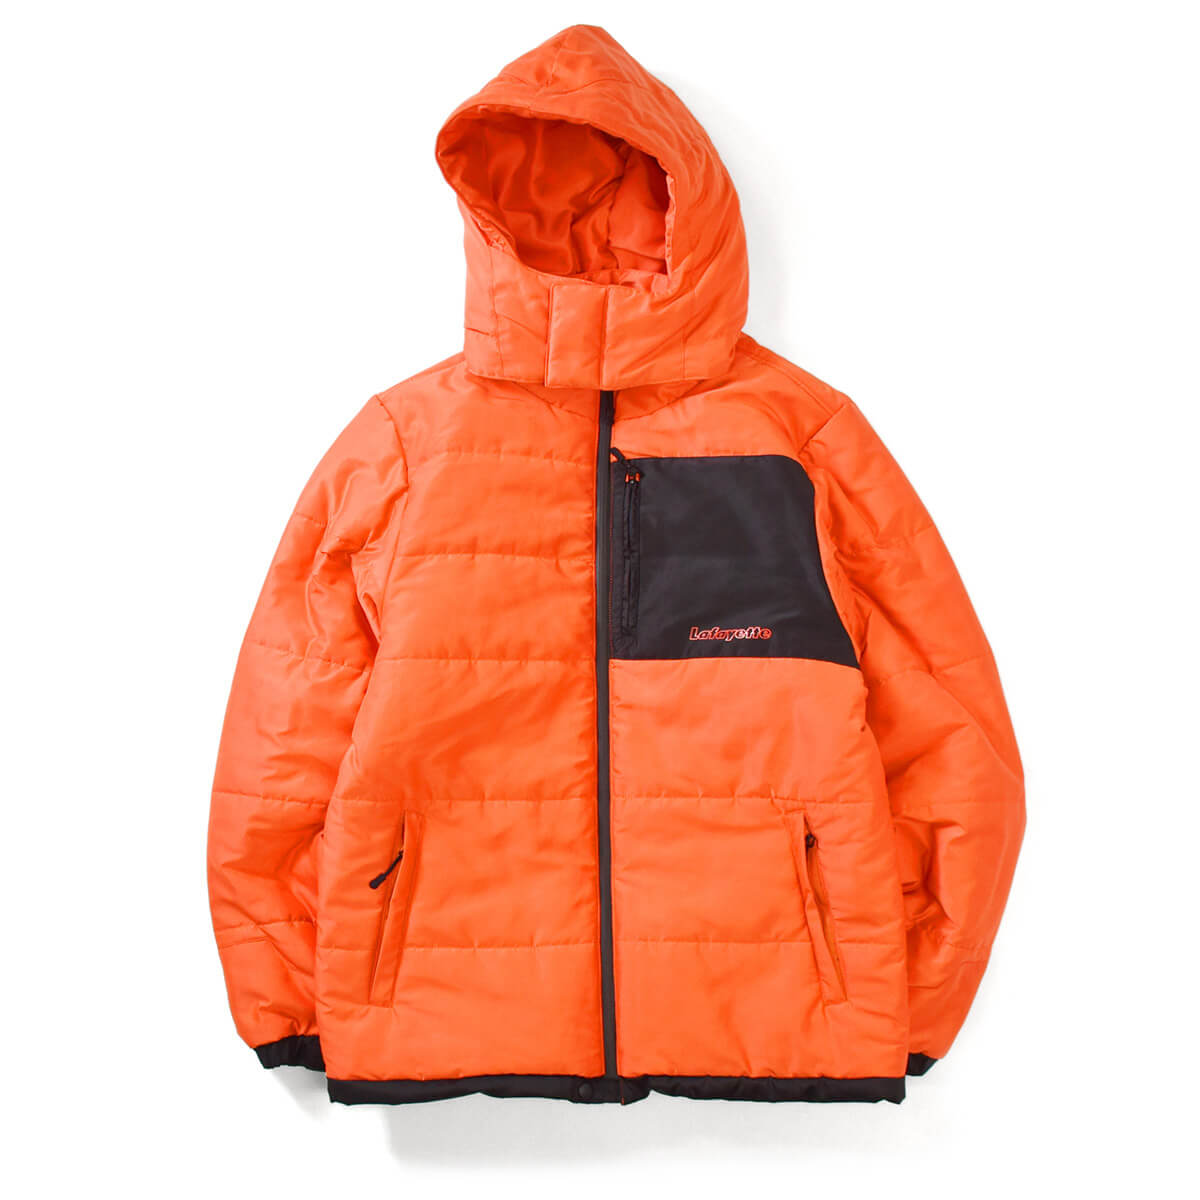 라파예트 패딩 자켓 ALL CITY POLYESTER FILL JACKET ORANGE Lafayette